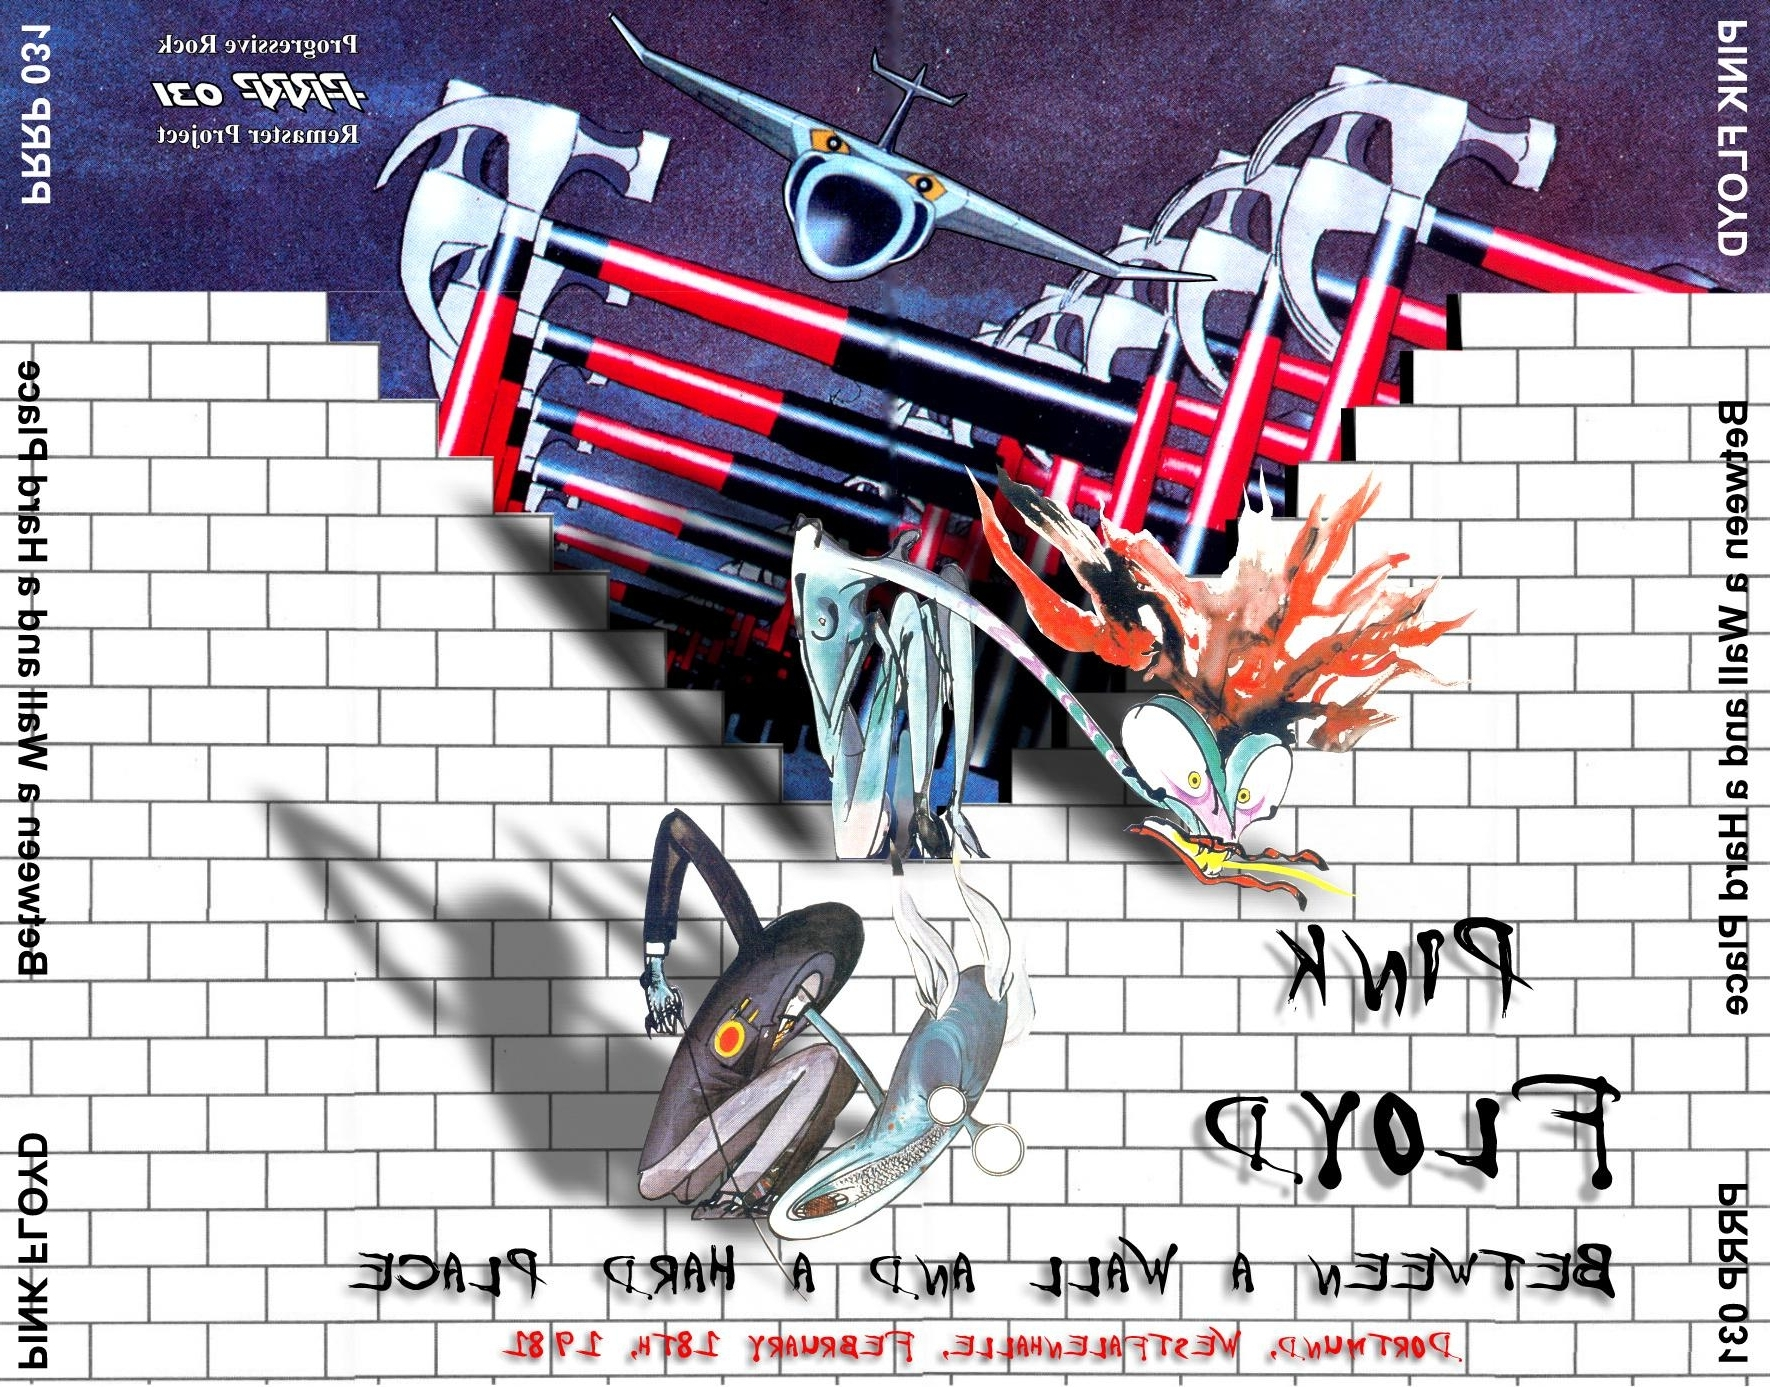 The International Echoes Hub – Lossless Studio And Concert Throughout Well Known Pink Floyd The Wall Art (View 16 of 20)